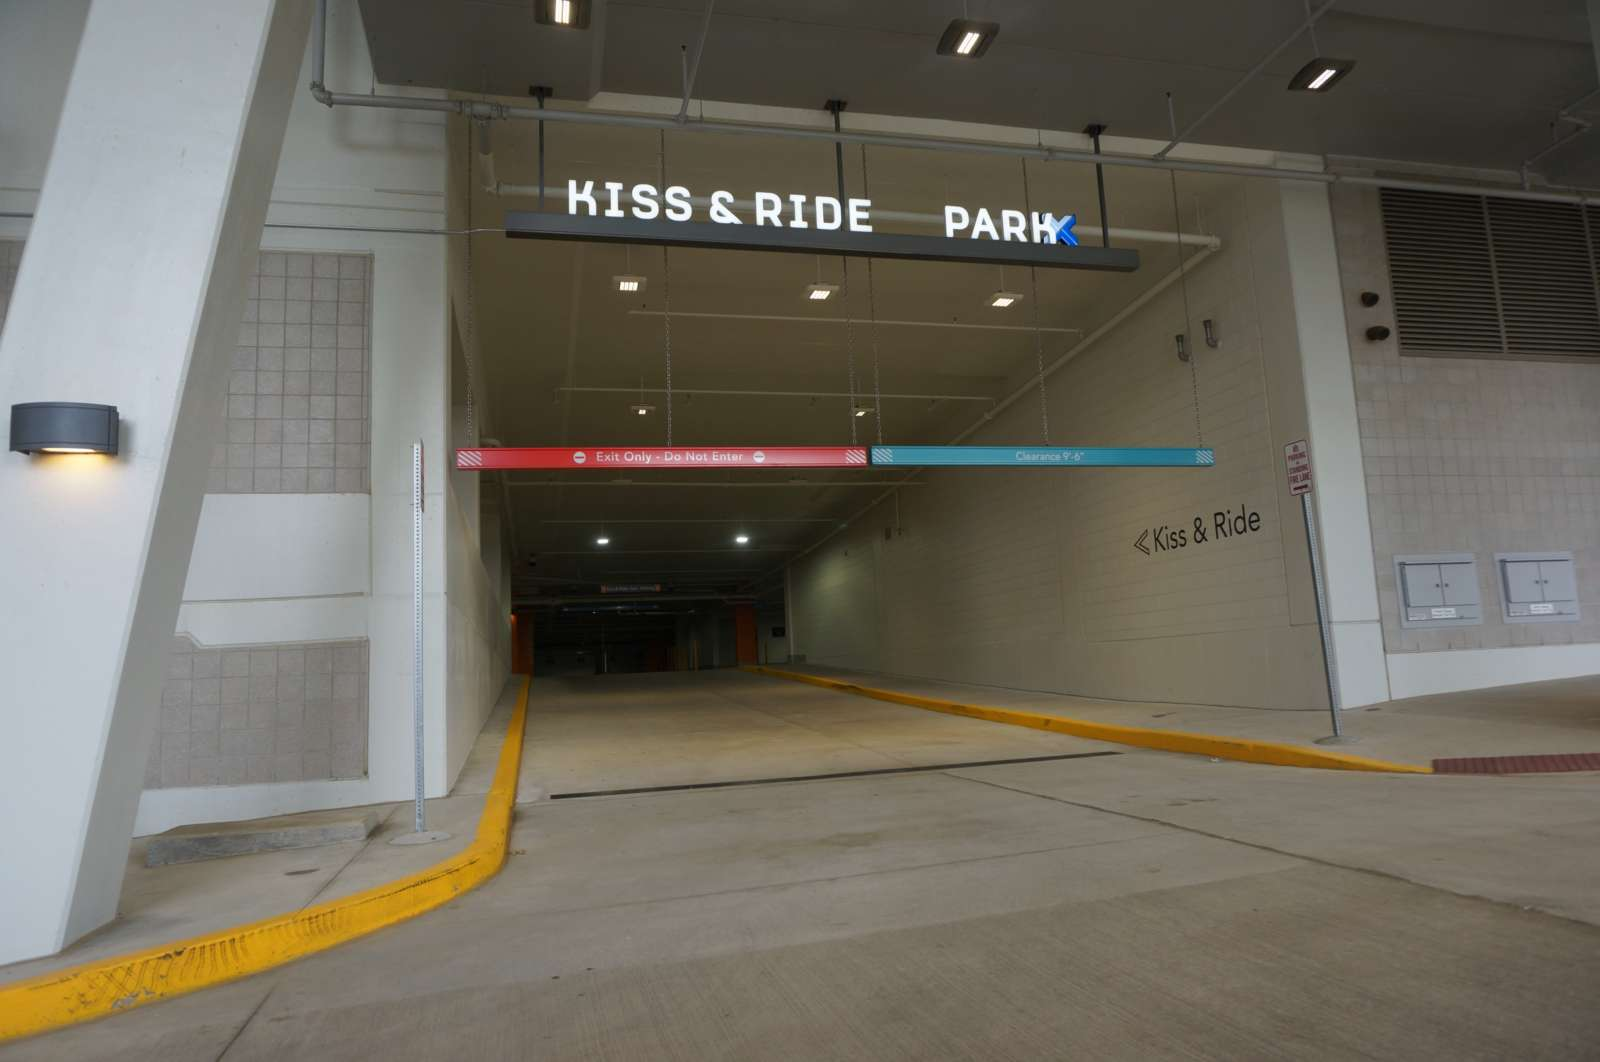 County to Limit Parking at Wiehle-Reston East Garage for